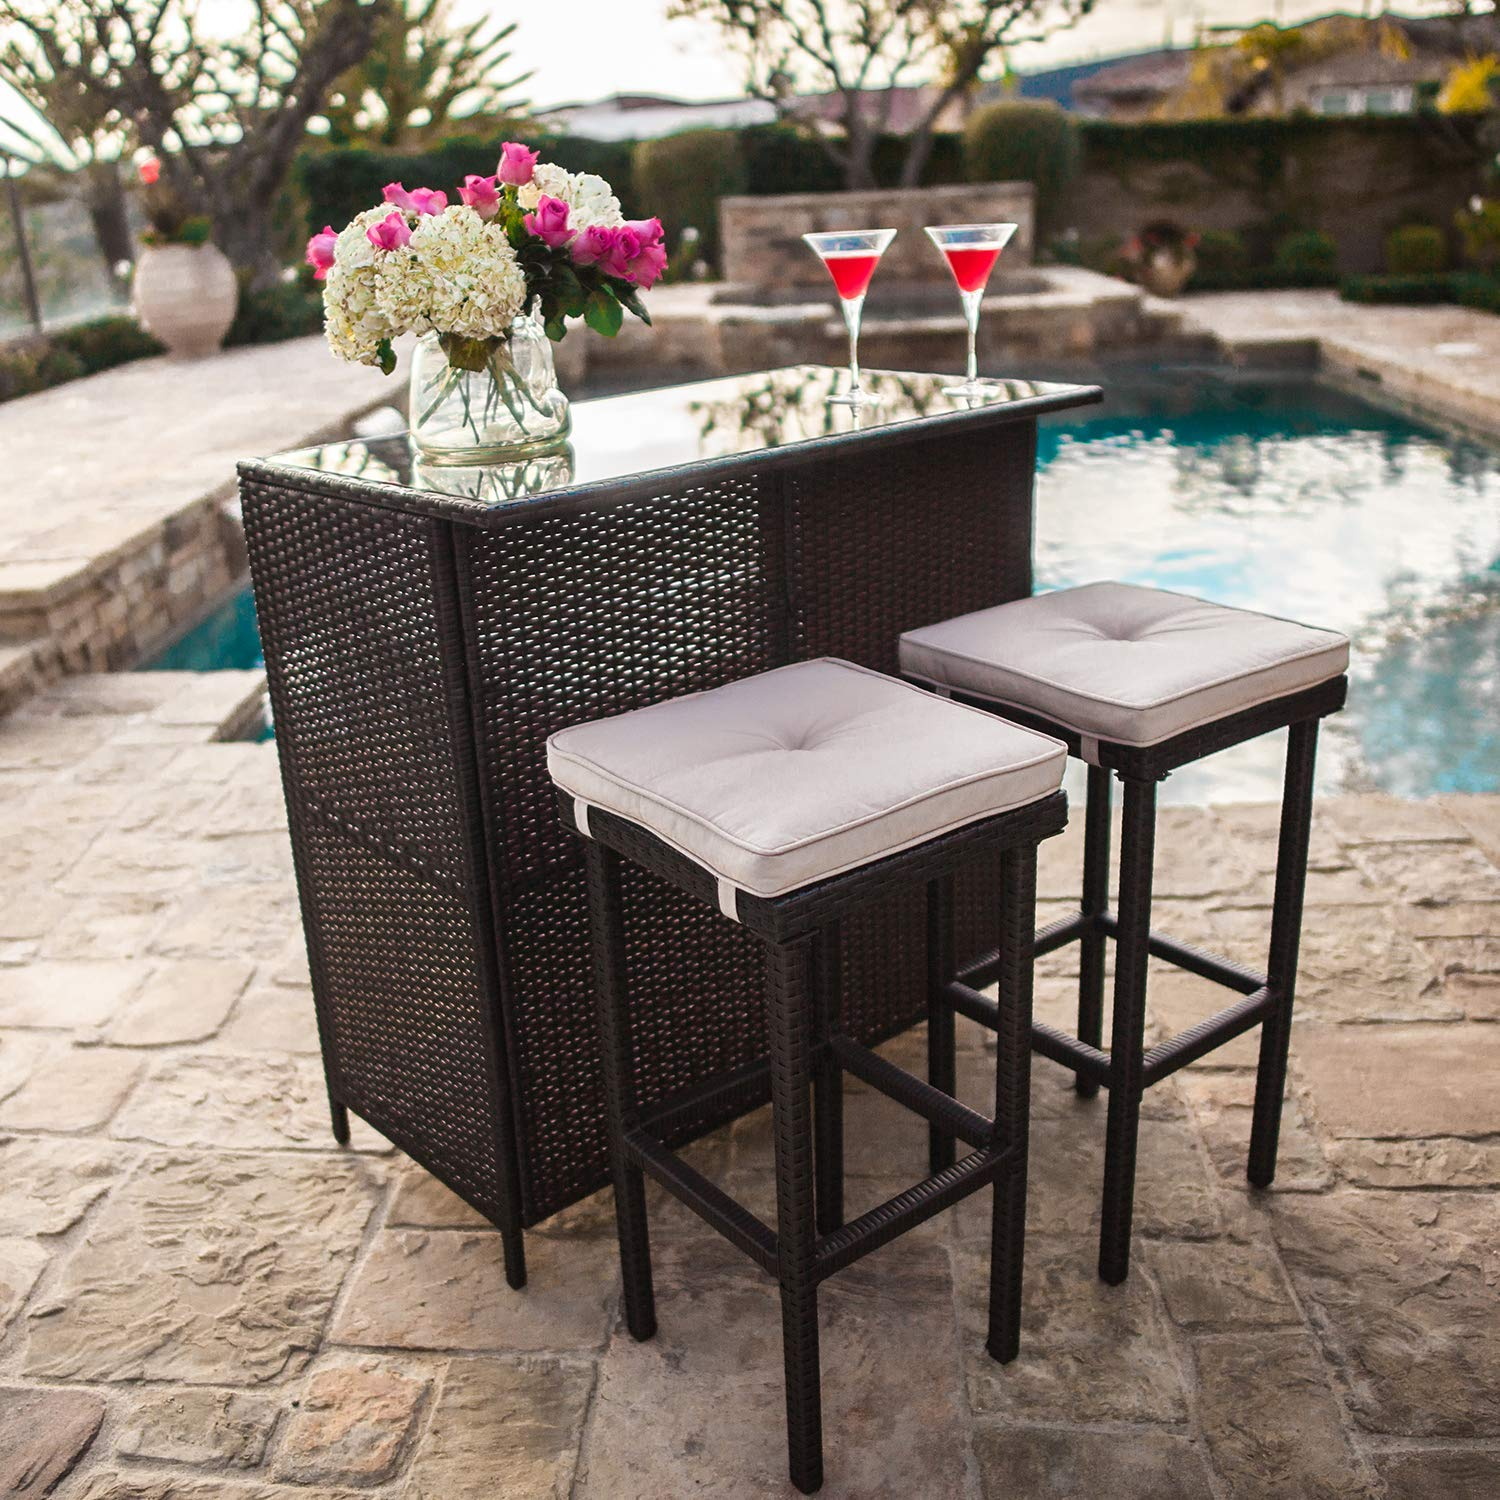 SUNCROWN Outdoor Bar Set 3-Piece Brown Wicker Patio Furniture - Glass Bar and Two Stools with Cushions for Patios, Backyards, Porches, Gardens or Poolside by SUNCROWN